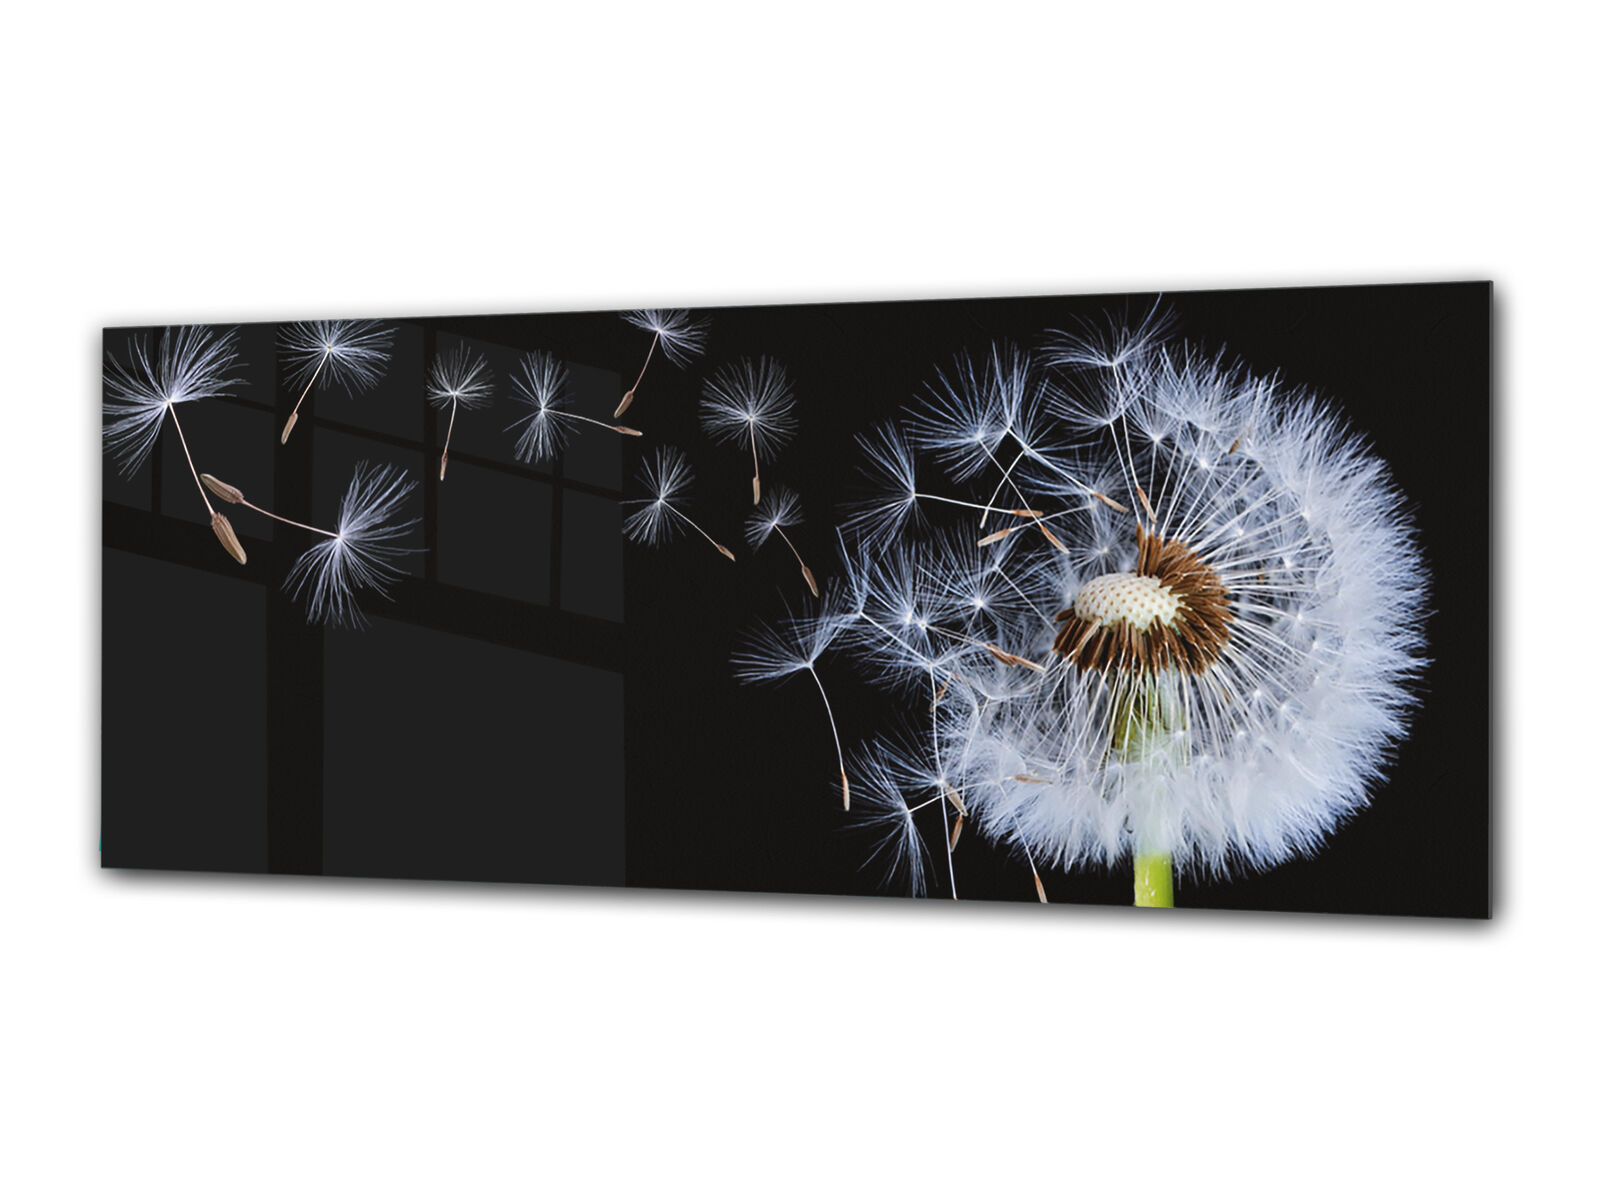 Glass Print Wall Art 112x45 cm Image on Glass Decorative Wall Picture 110444723